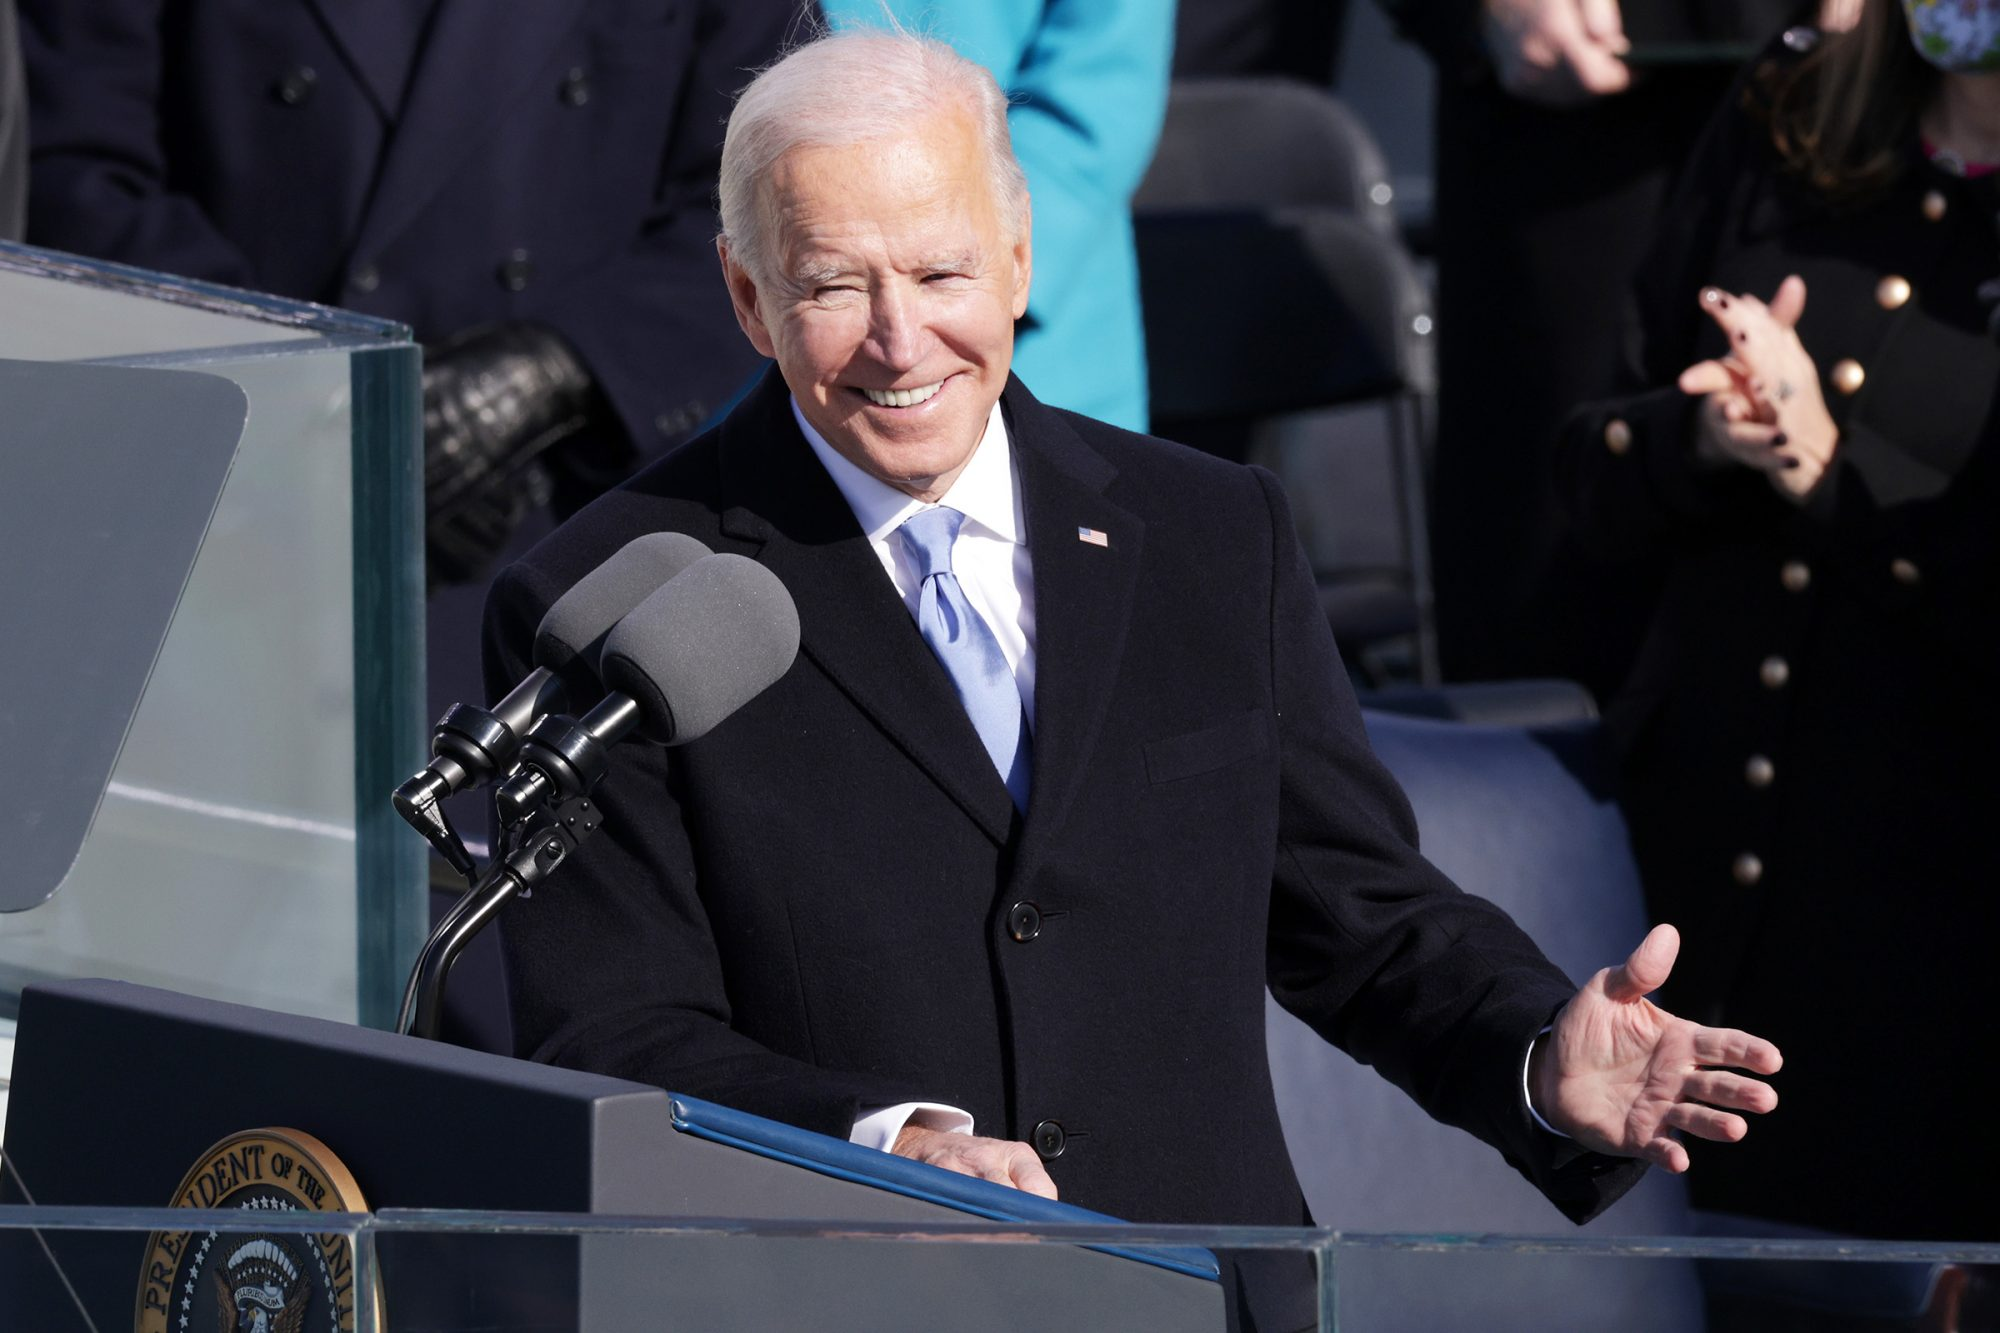 U.S. President Joe Biden delivers his inaugural address on the West Front of the U.S. Capitol on January 20, 2021